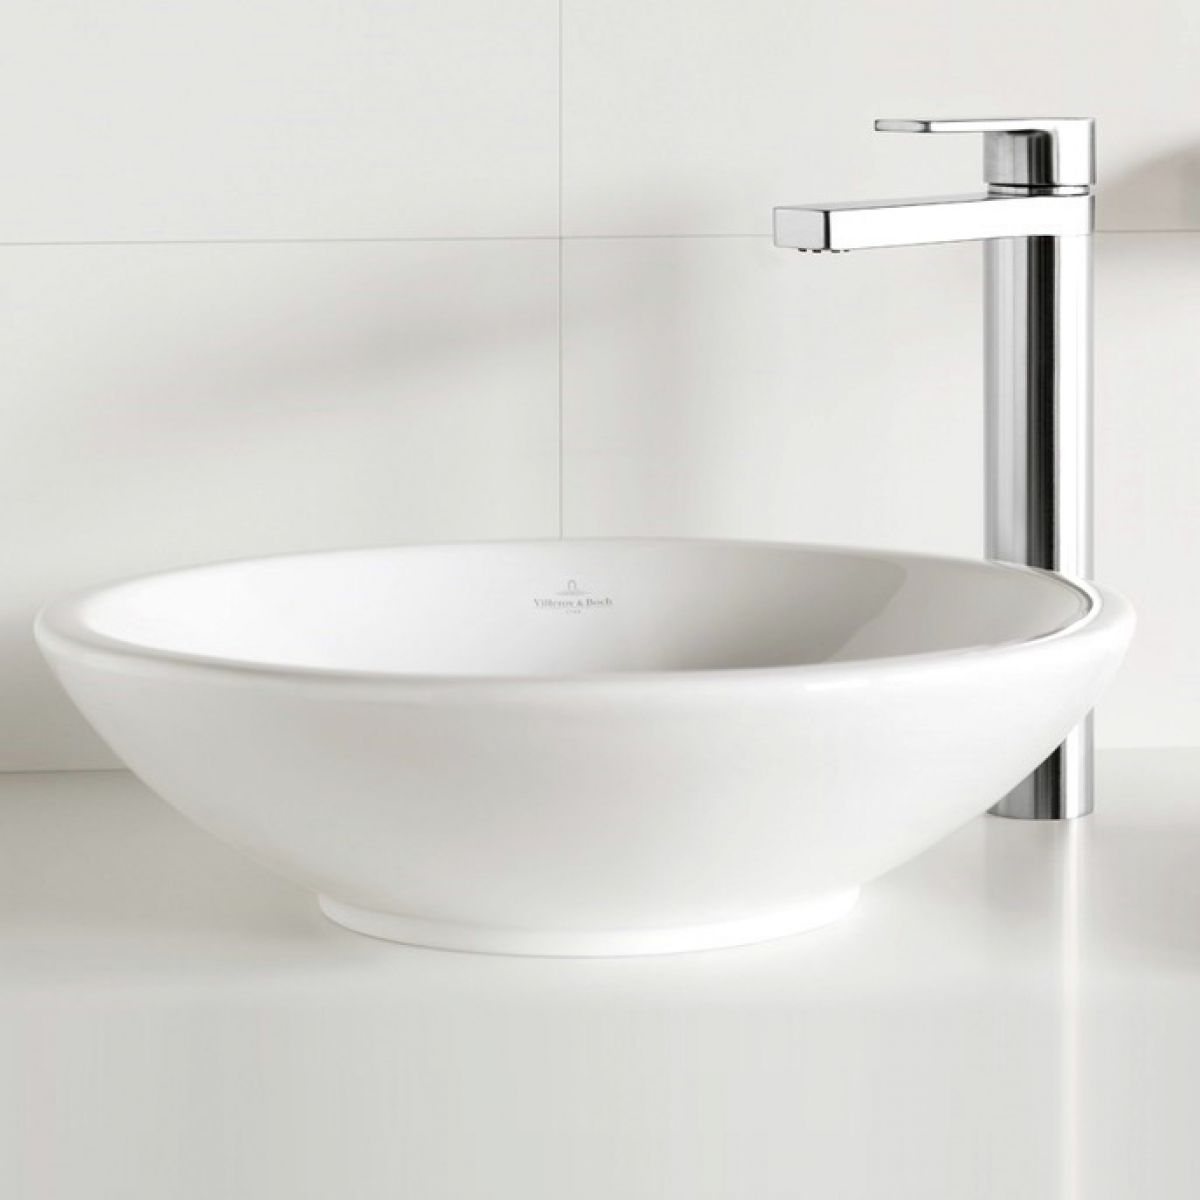 Villeroy & Boch Loop & Friends Circular Surface Mounted Basin